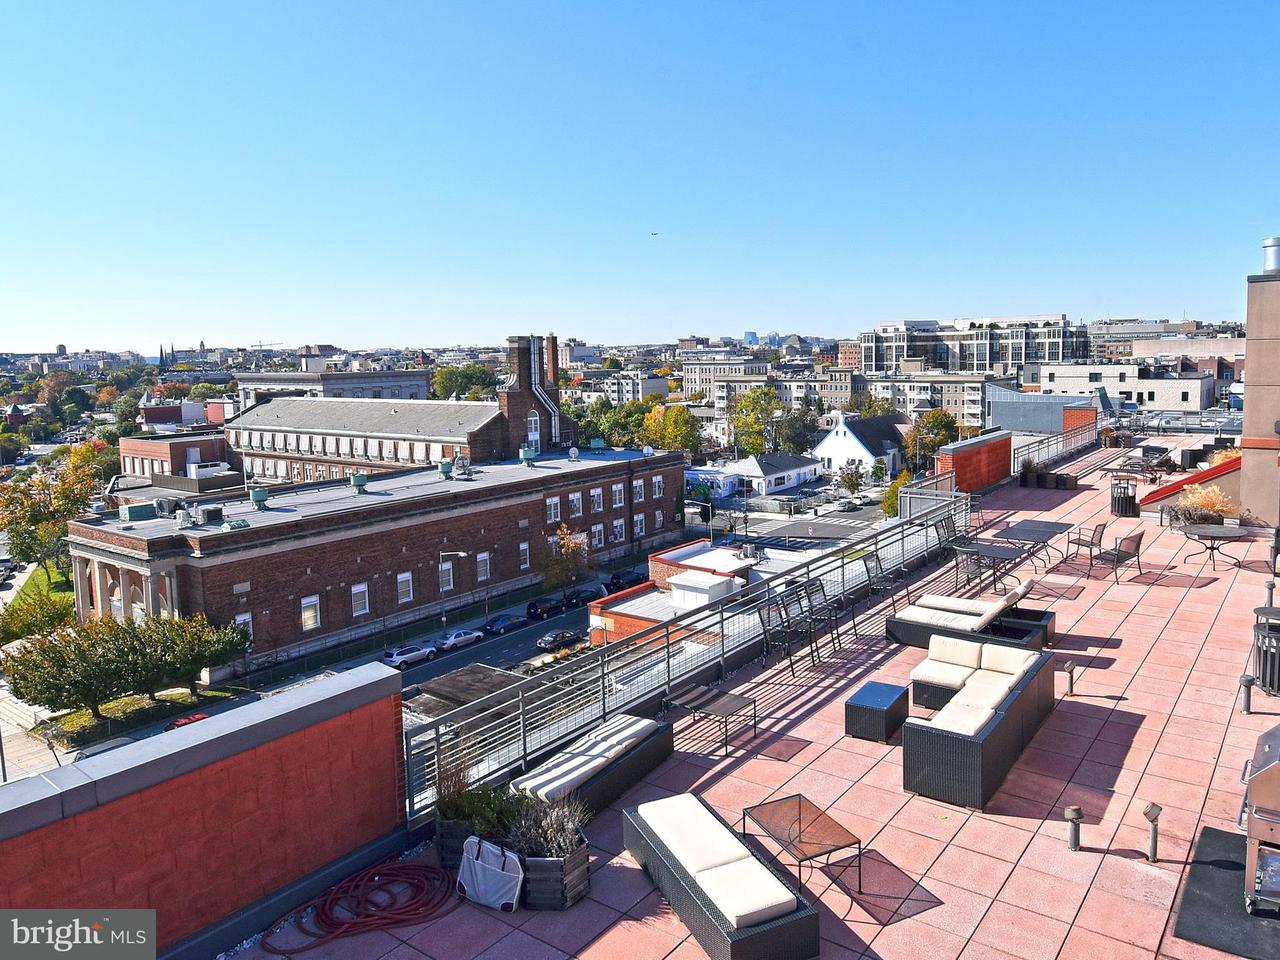 Additional photo for property listing at 2120 Vermont Ave Nw #206 2120 Vermont Ave Nw #206 Washington, コロンビア特別区 20001 アメリカ合衆国